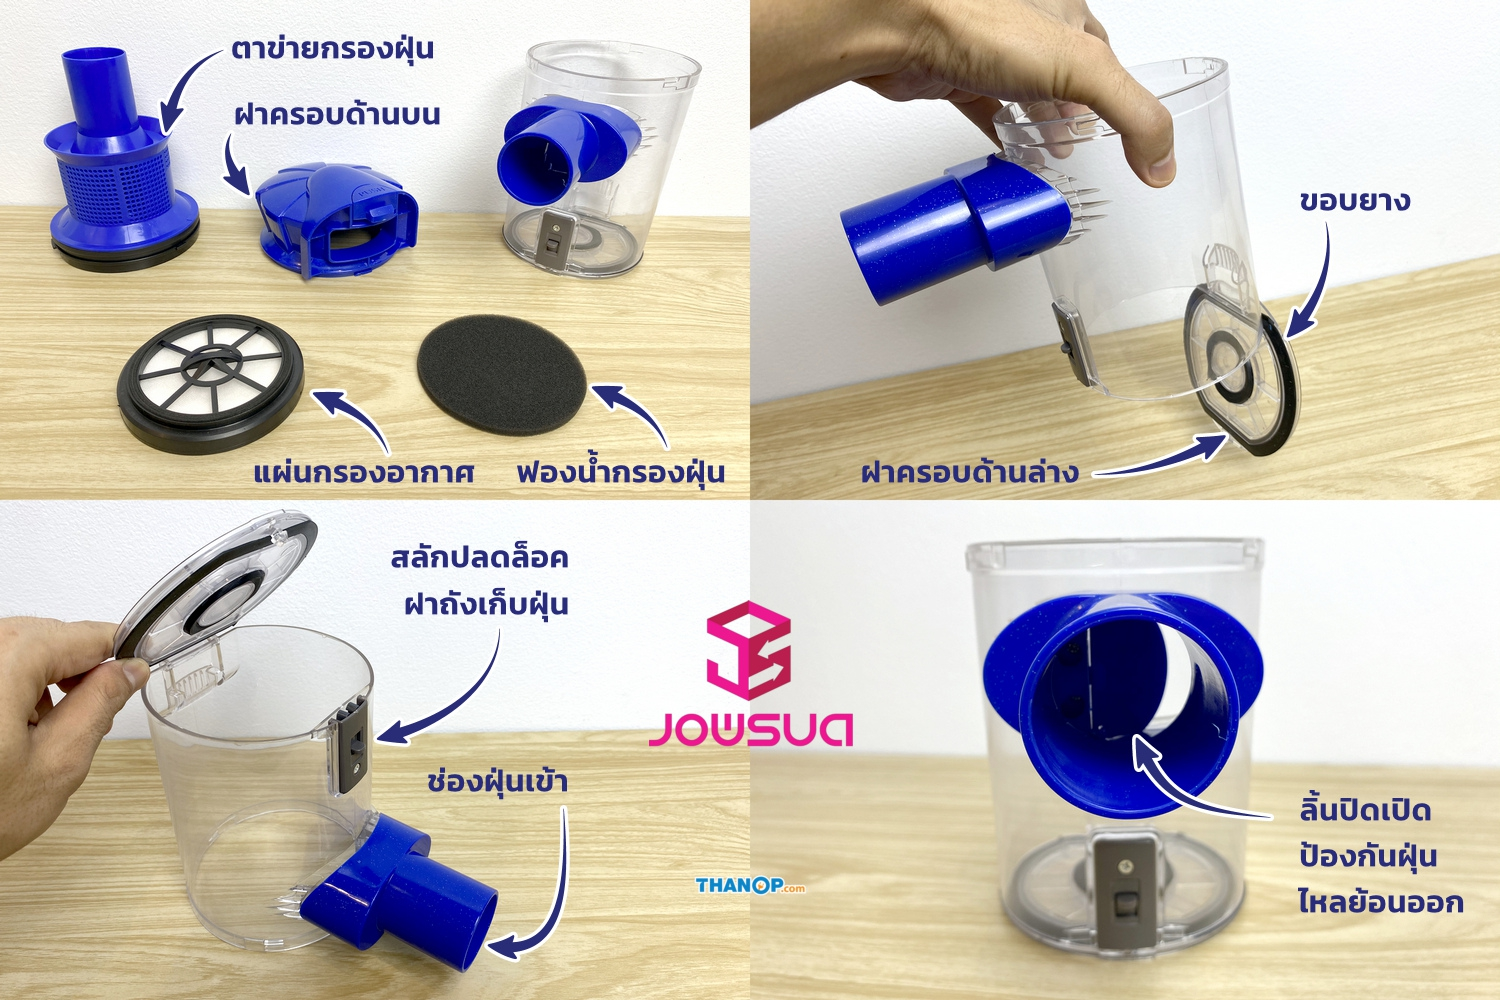 jowsua-cyclone-vacuum-cleaner-dust-canister-detail